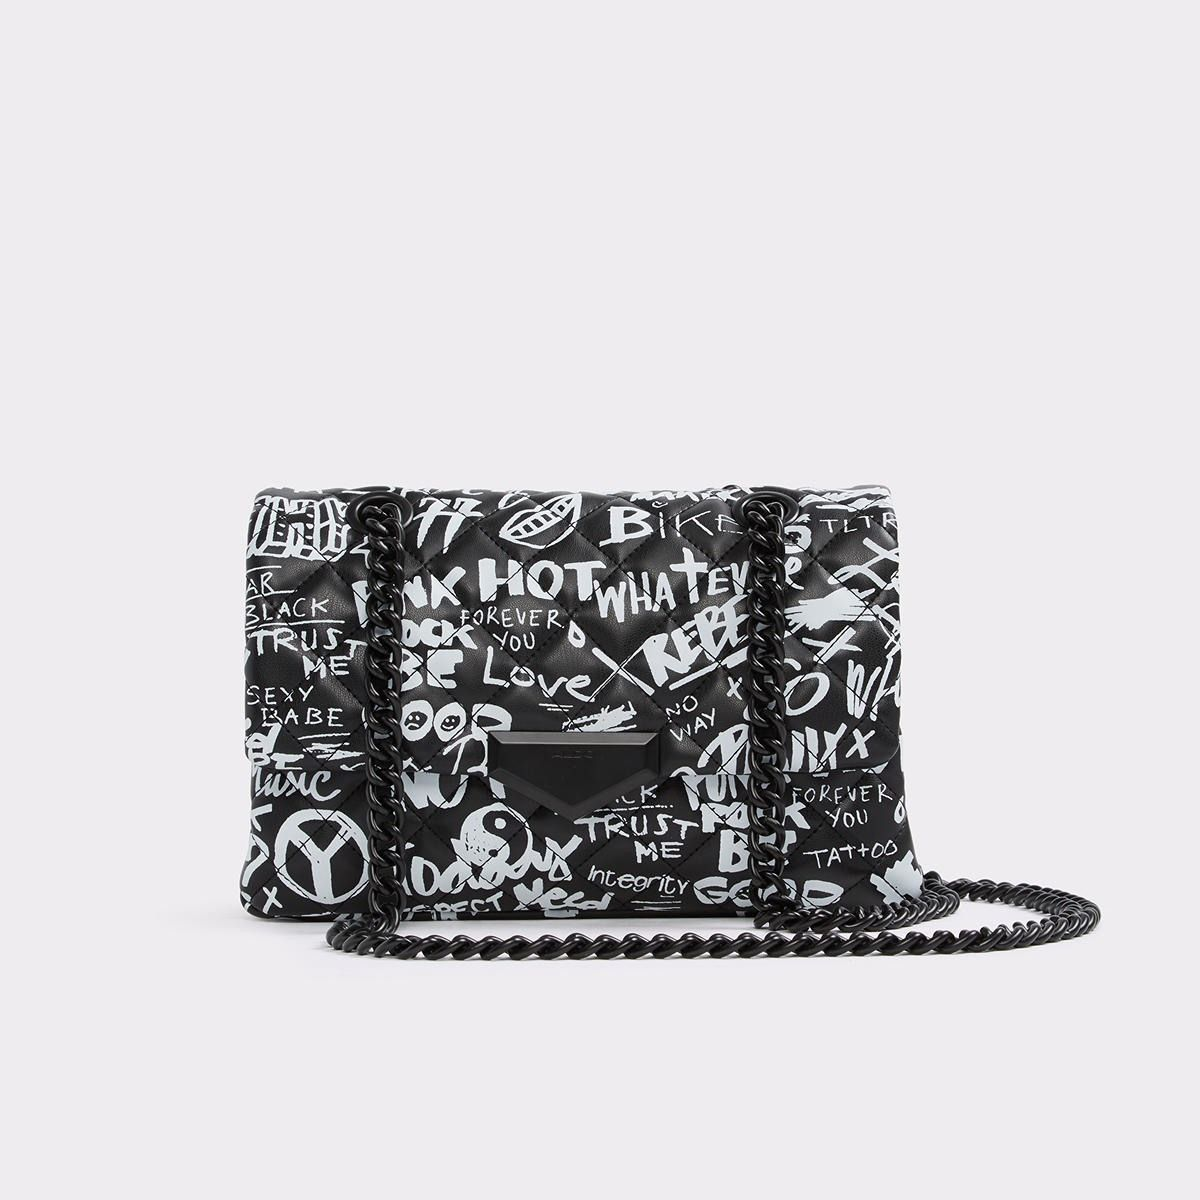 69d4cb0589 Caldenno This illicit little bag has a lot to say yet not punishable by  law. Express yourself with our quilted graffiti crossbodywith magnetic snap  ...